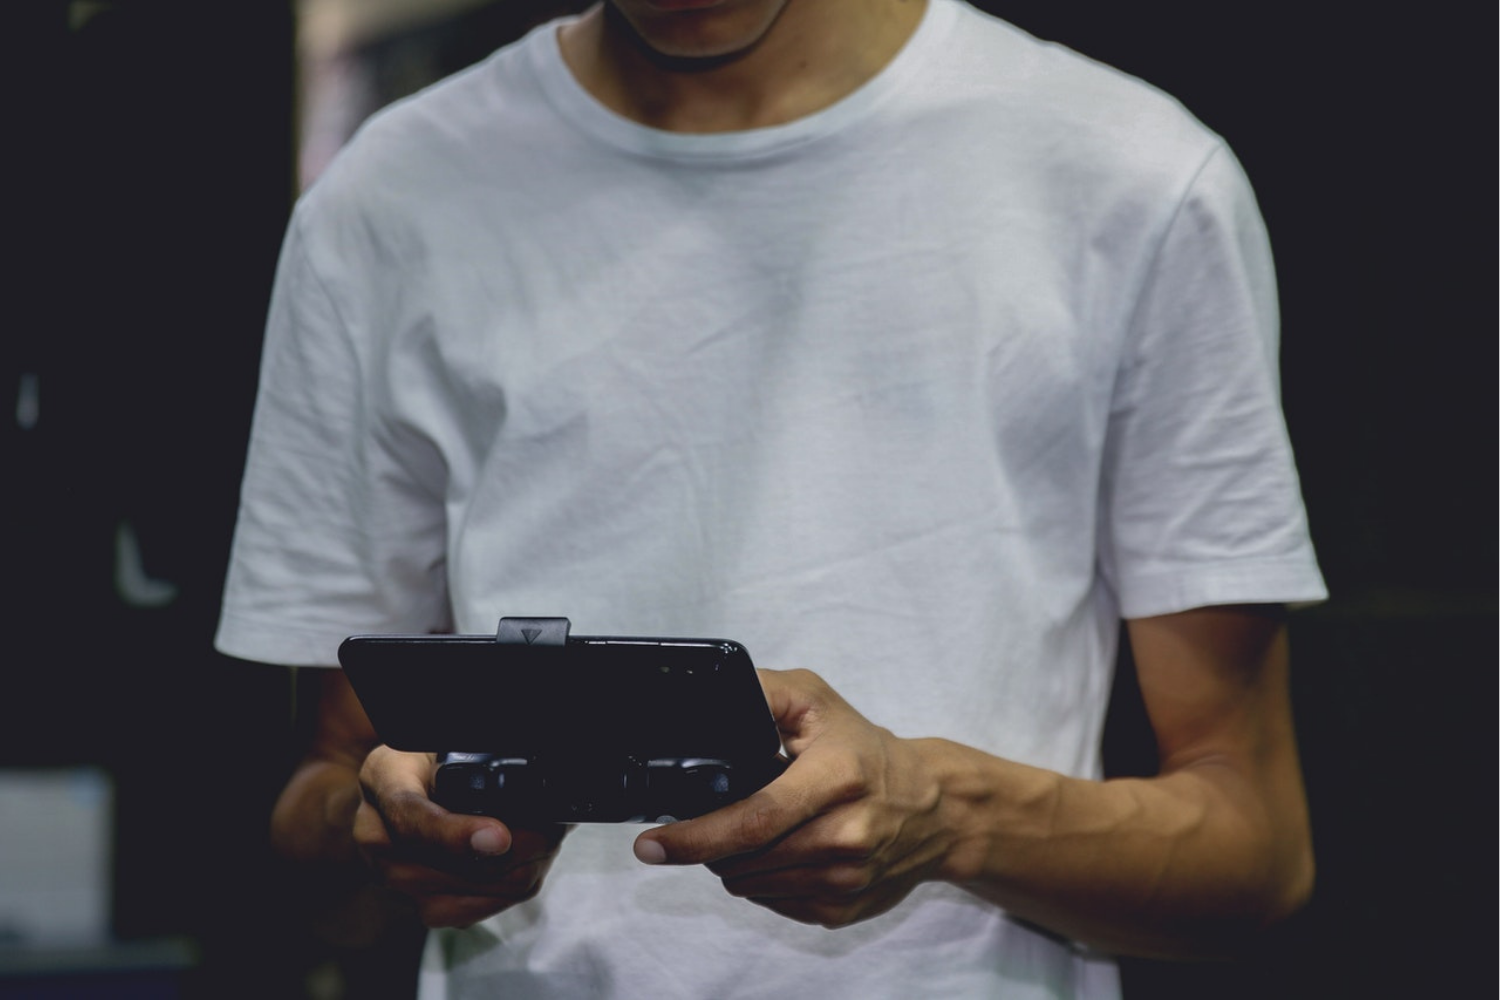 man using gaming device